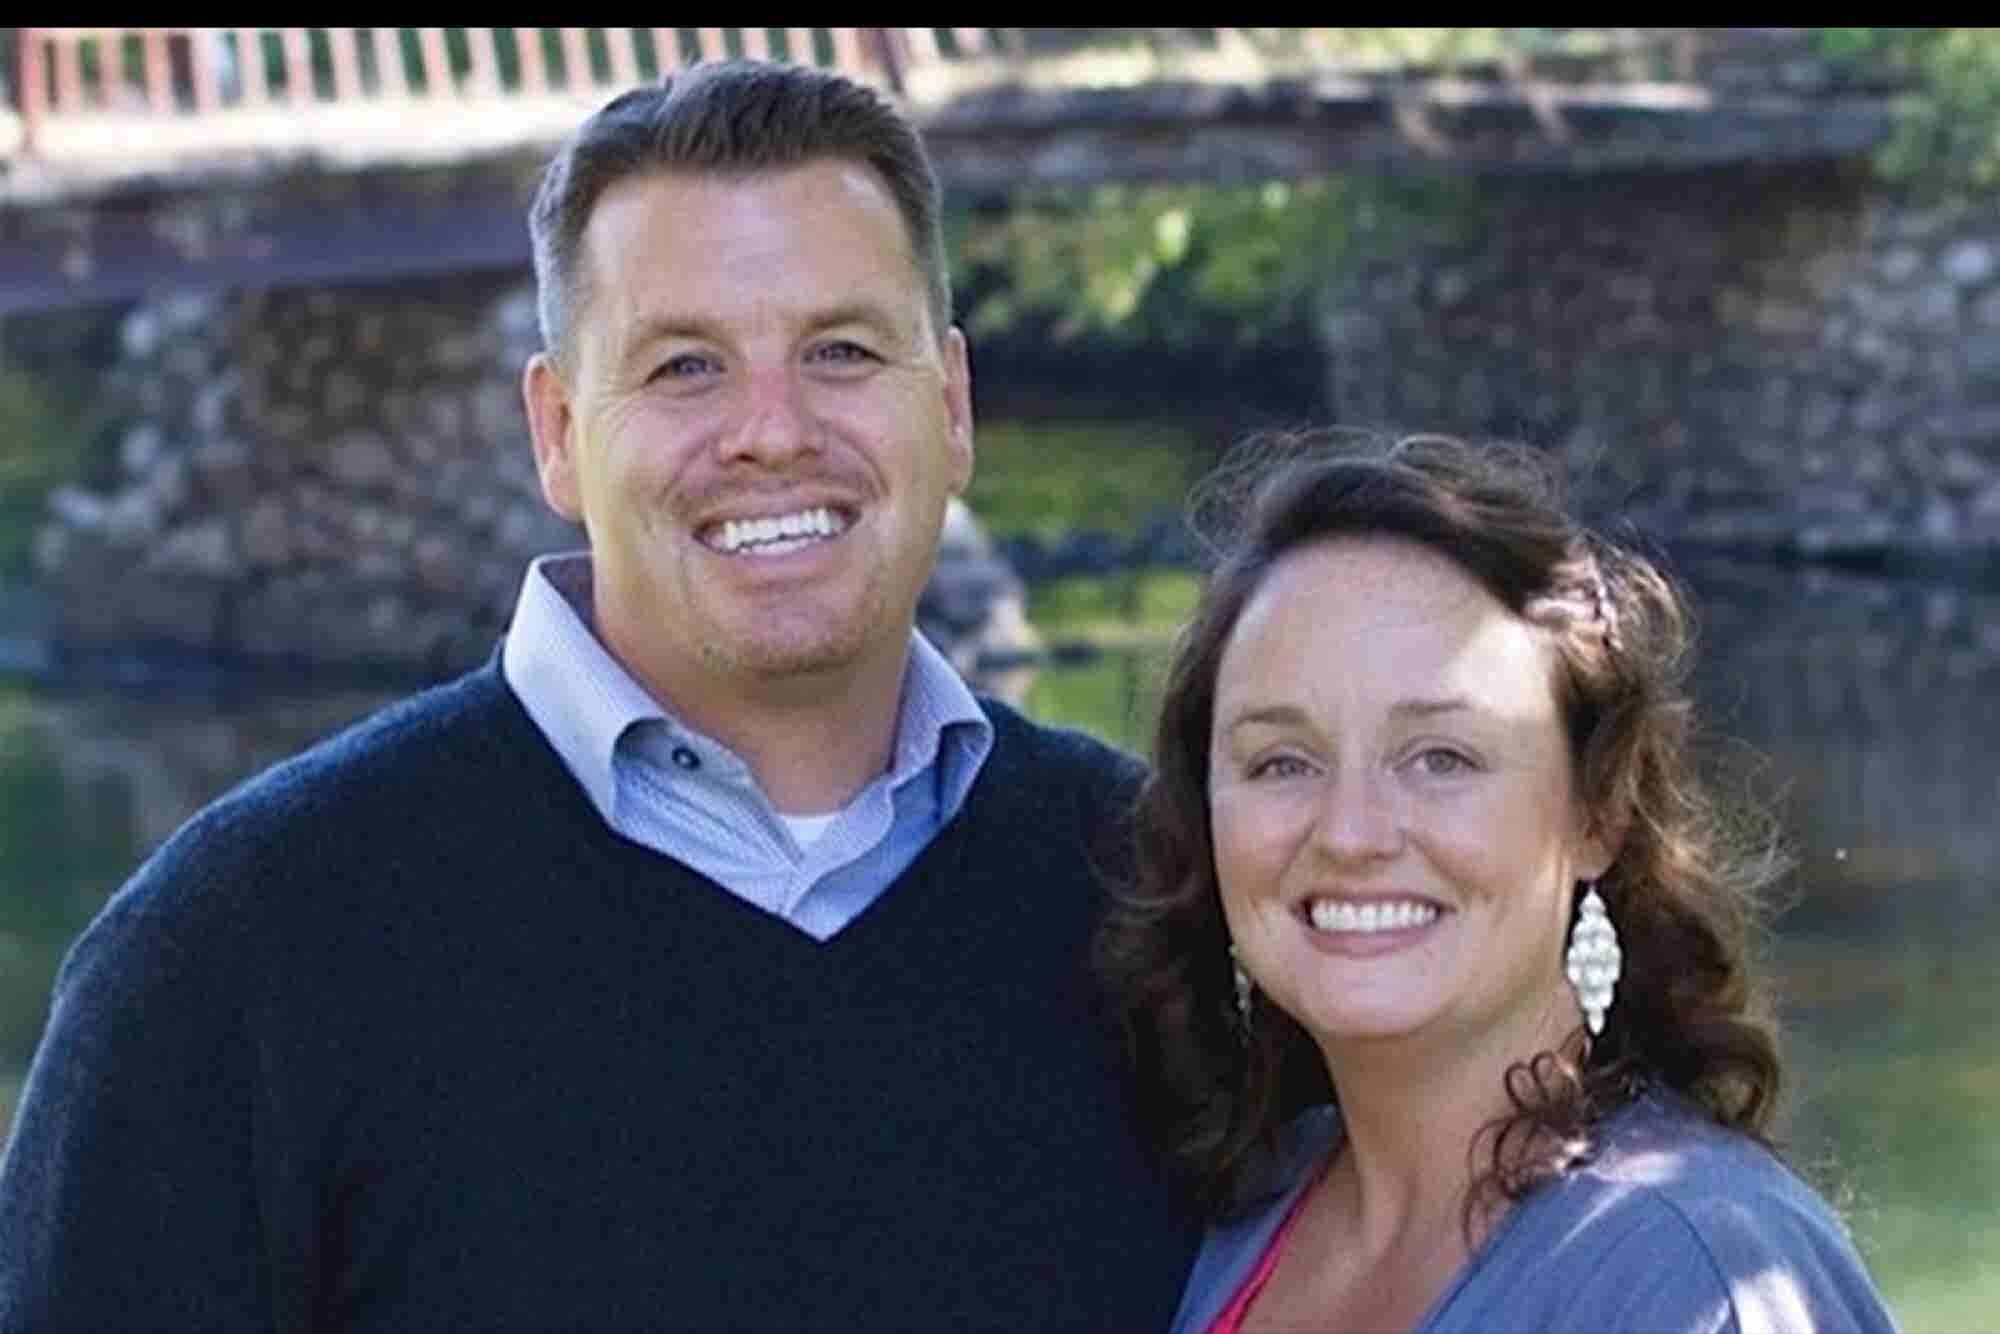 A Step Into the Unknown Pays Off for Franchising Couple